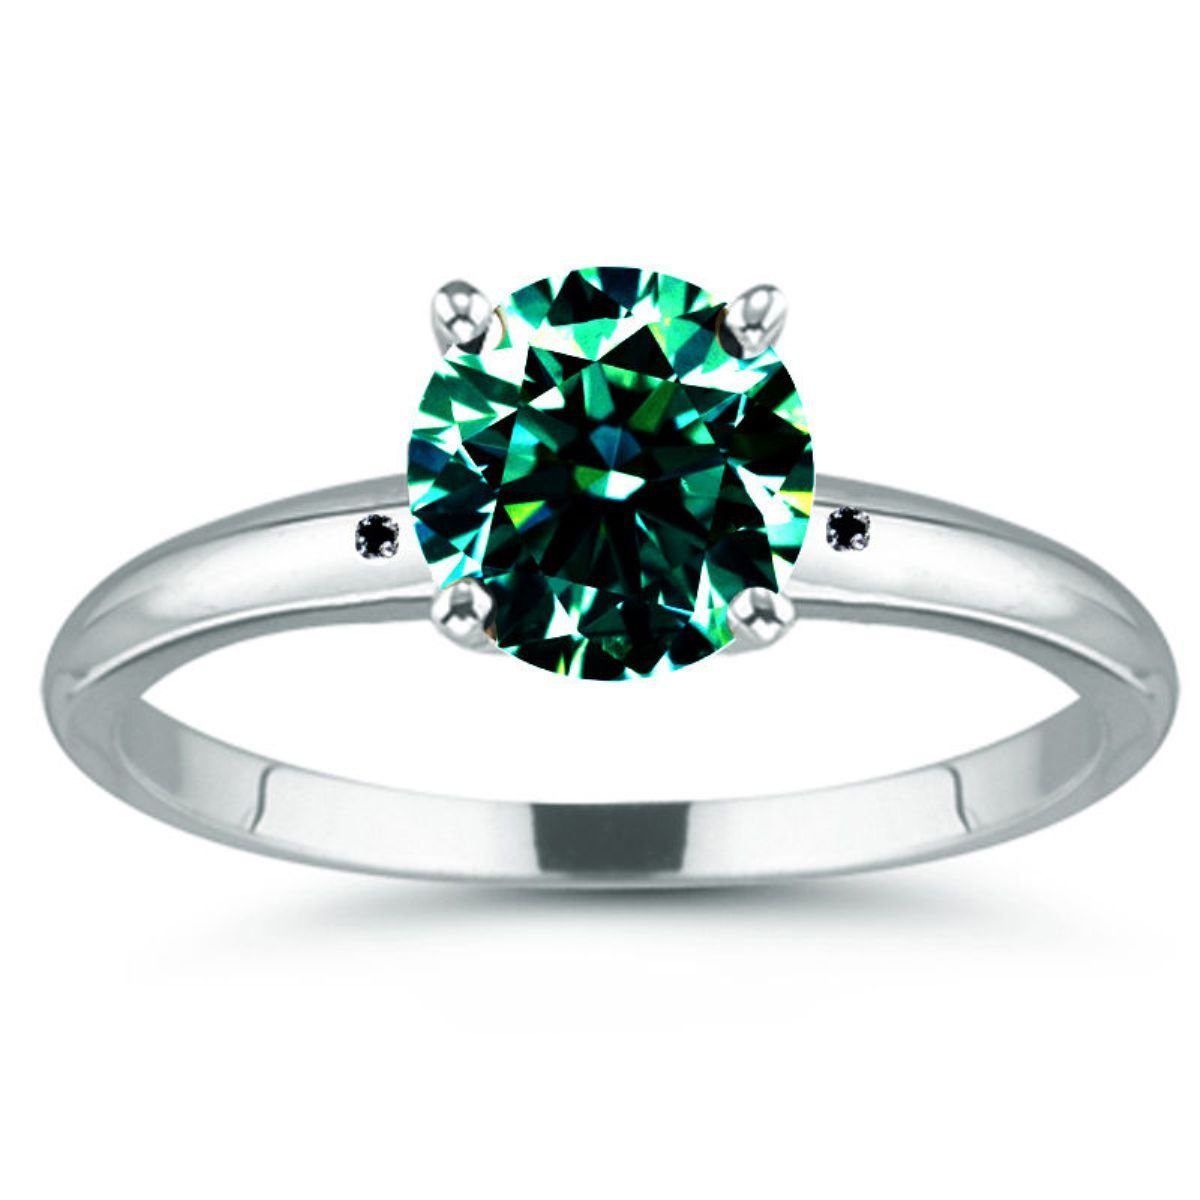 RINGJEWEL Round Moissanite Silver Plated Engagement Ring (Blue Green Color,3.25 Ct,SI1 Clarity,Size 7)